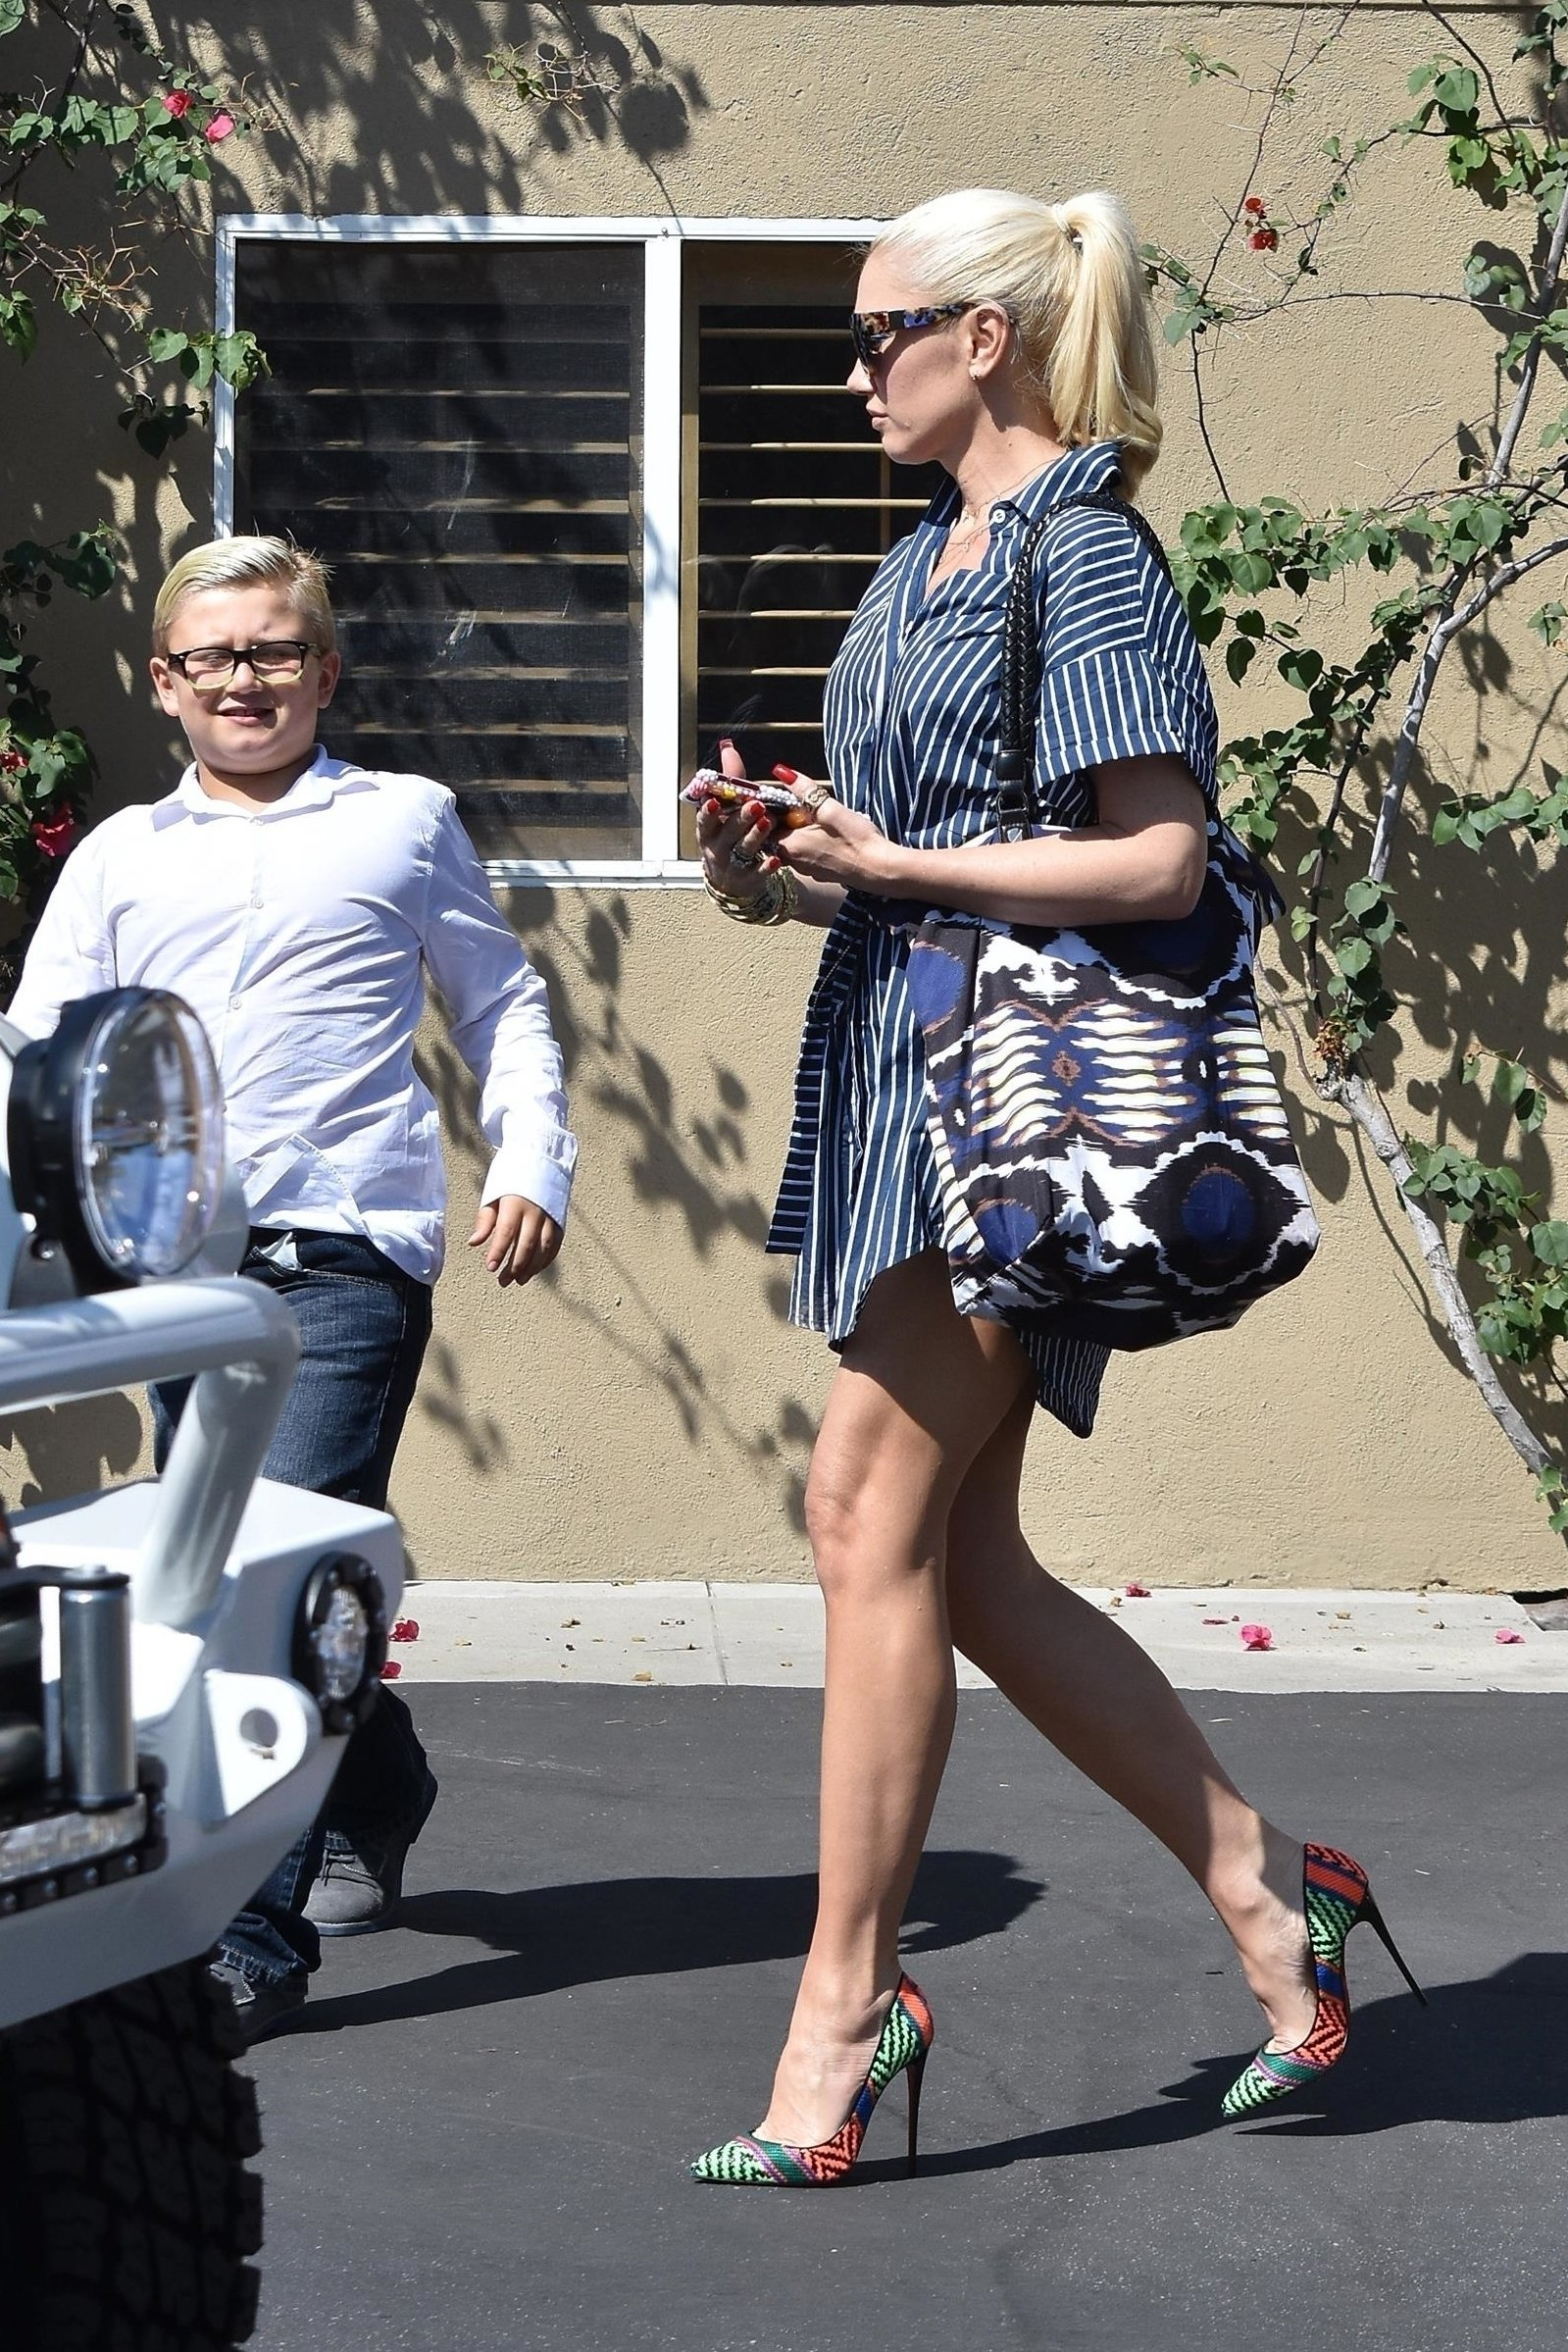 Los Angeles, CA  - *EXCLUSIVE*  - Gwen Stefani shows off her lacy pajama shorts while at church with her boys. Gwen shows off her long legs in the short t-shirt dress while chatting with her church friends after the Sunday service. Could the 47-year-old be expecting a fourth child with Blake Shelton? Radar reported she's pregnant with boyfriend Blake Shelton's baby.  Pictured: Gwen Stefani  BACKGRID USA 10 SEPTEMBER 2017, Image: 348970080, License: Rights-managed, Restrictions: , Model Release: no, Credit line: Profimedia, AKM-GSI